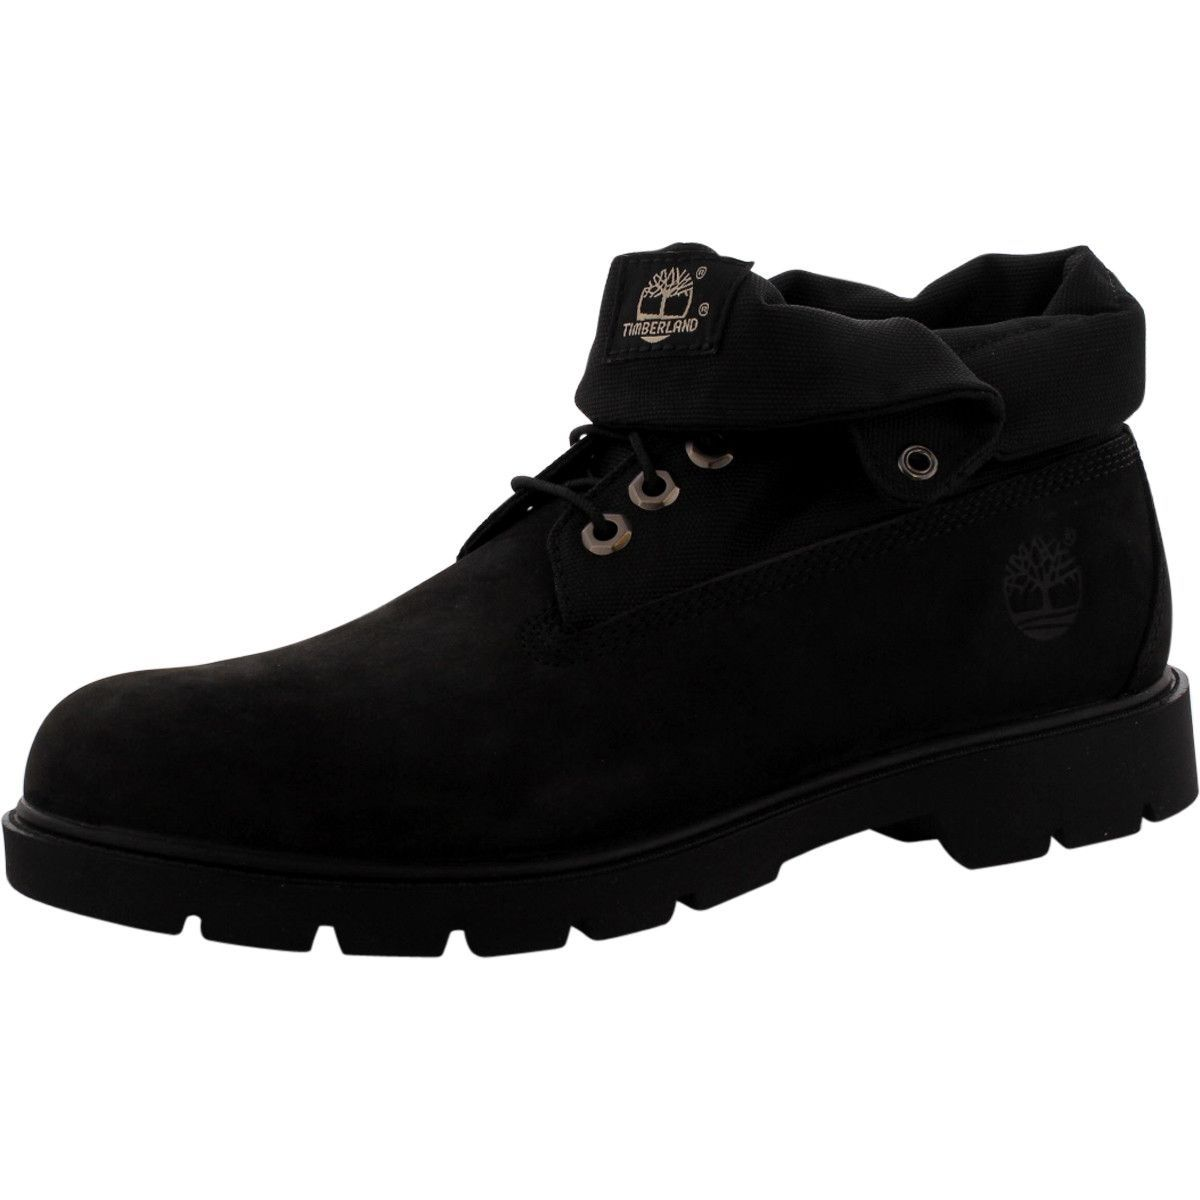 e09c7b8b2f1 Men'S Basic Roll Top Boot - Black Nubuck | Deep Desires | Boots ...